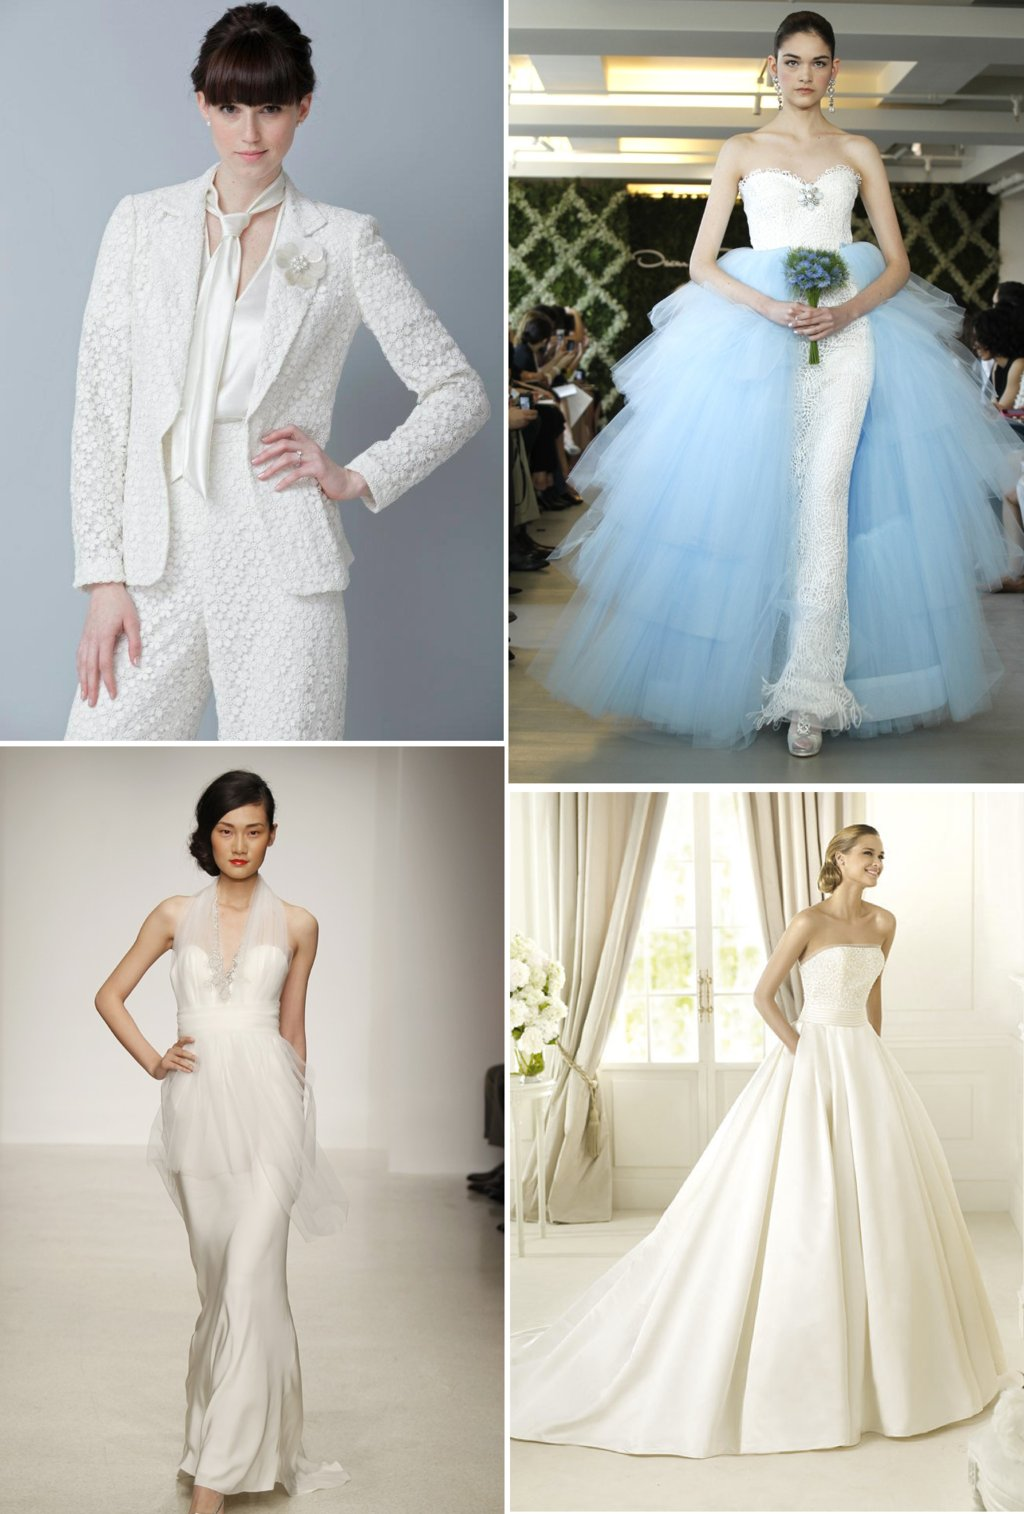 2013-wedding-dress-trends-peplums-pockets-pants-sheaths.full